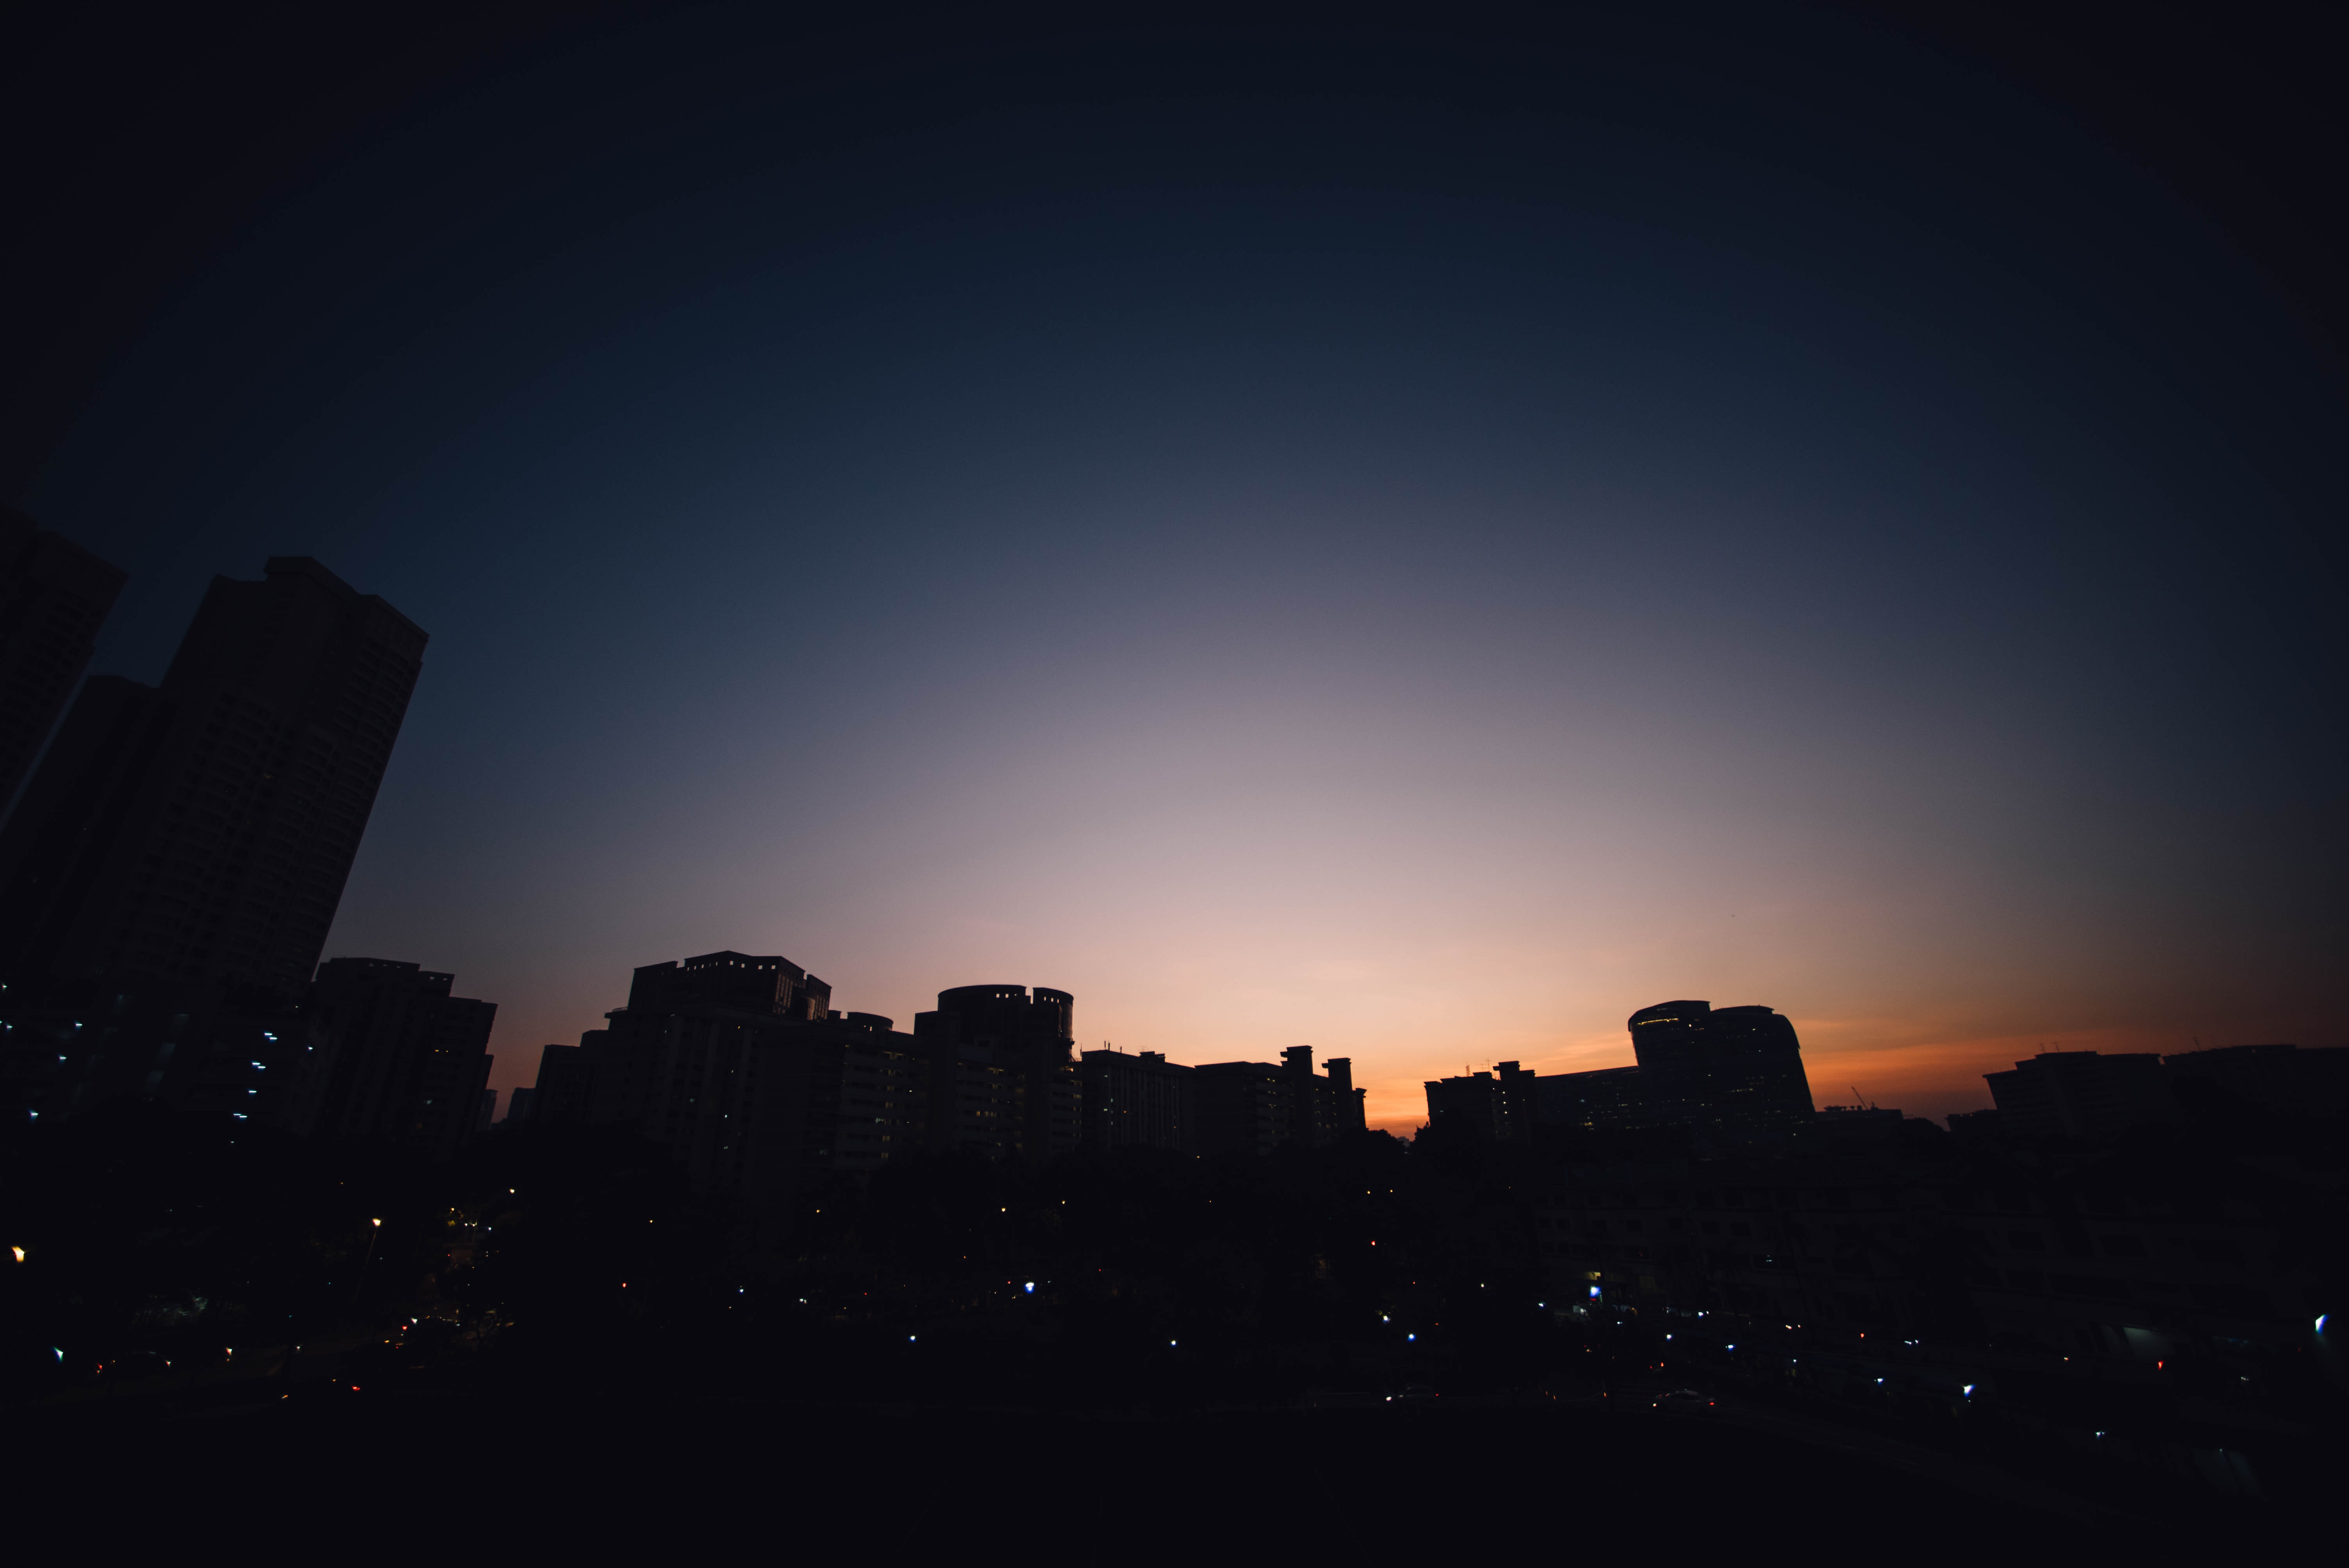 buildings silhouette during golden hour